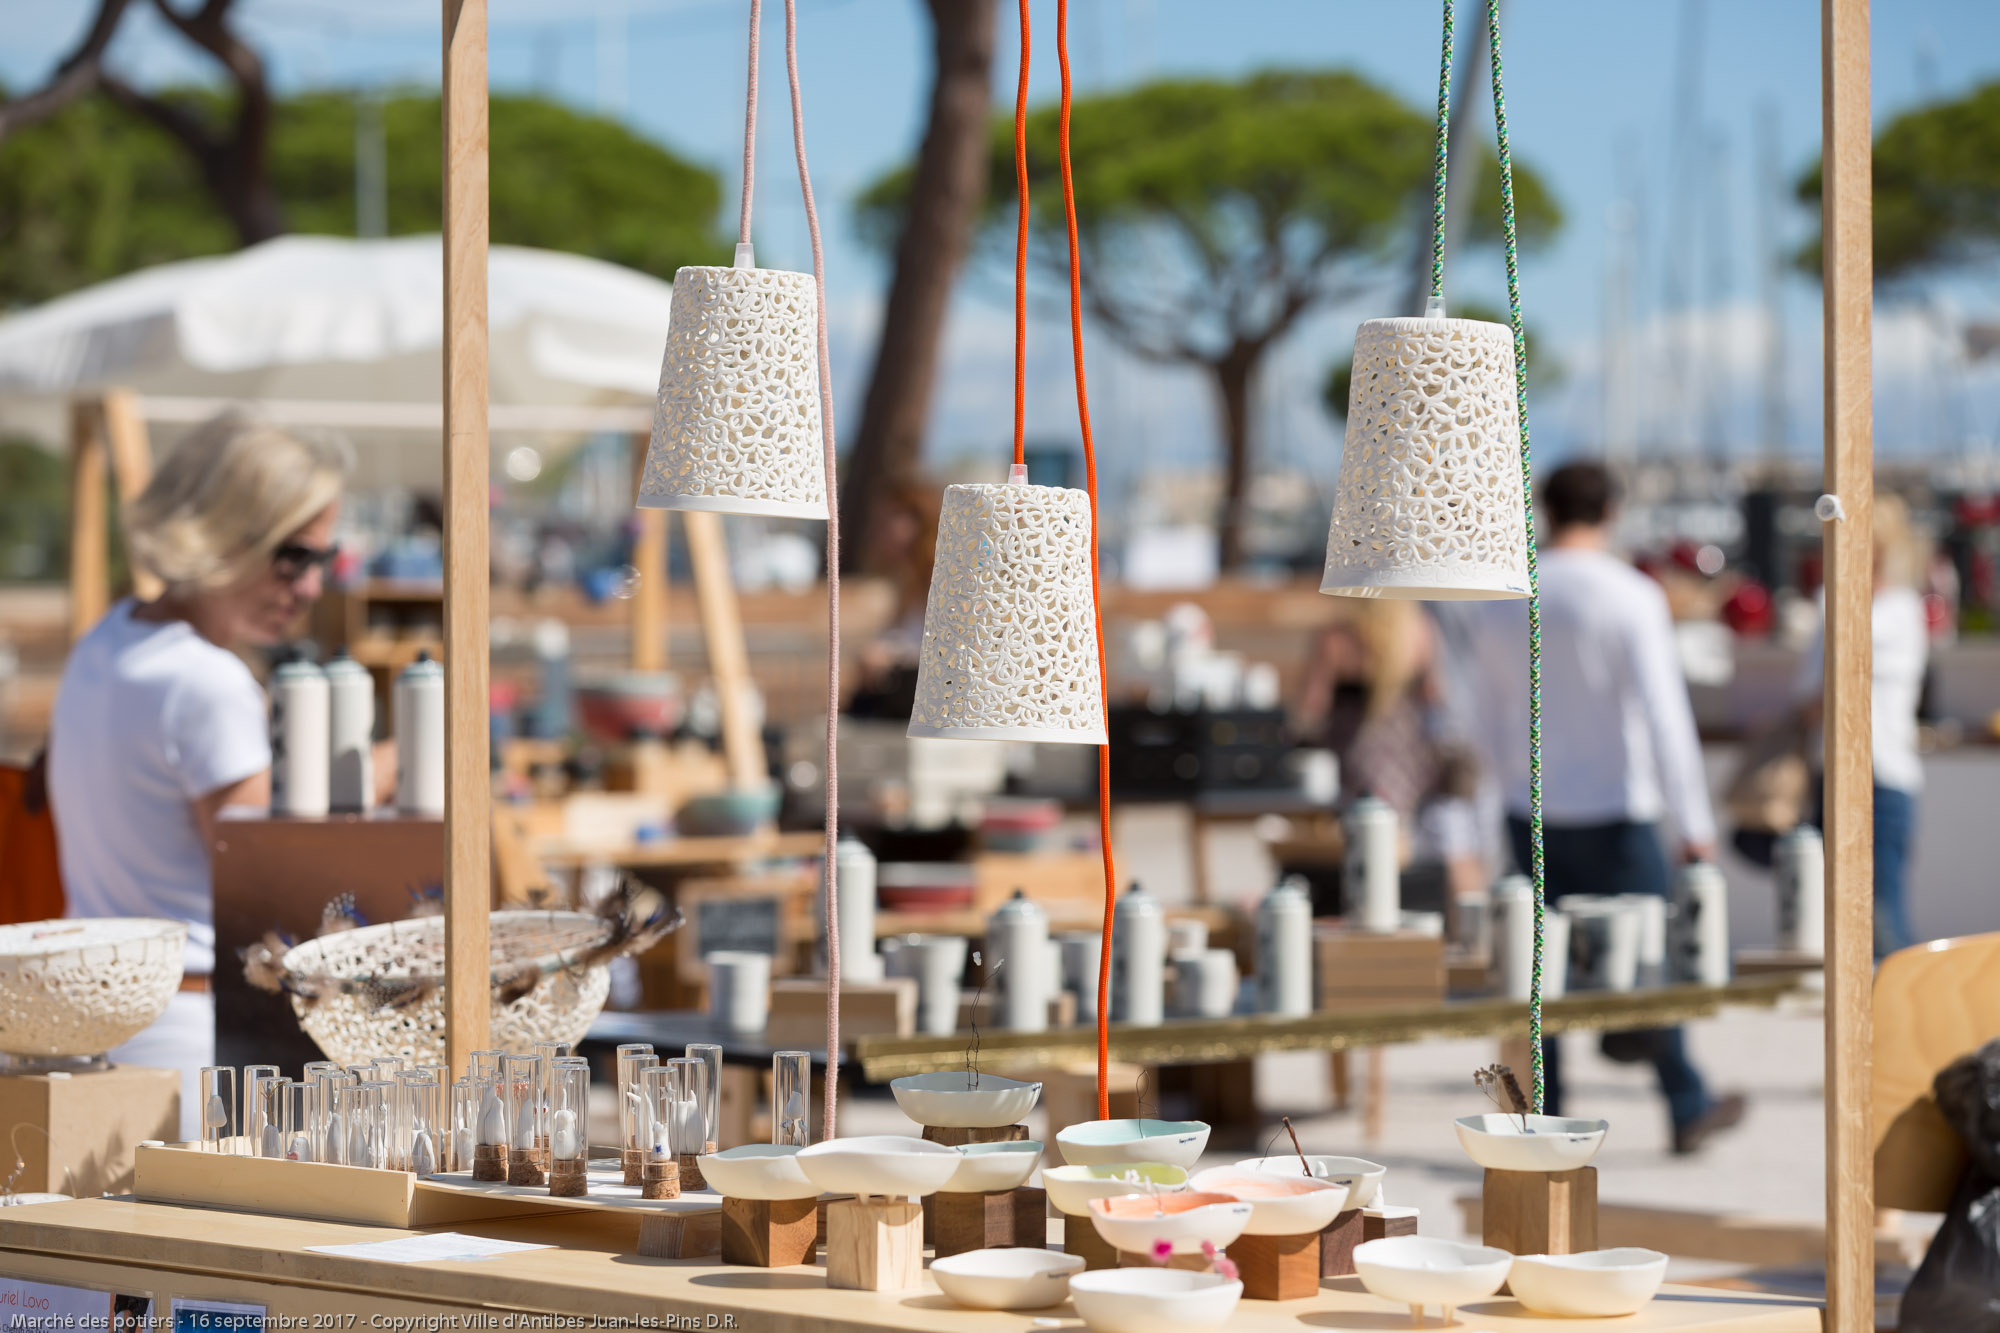 Ceramic market the official website of antibes juan les